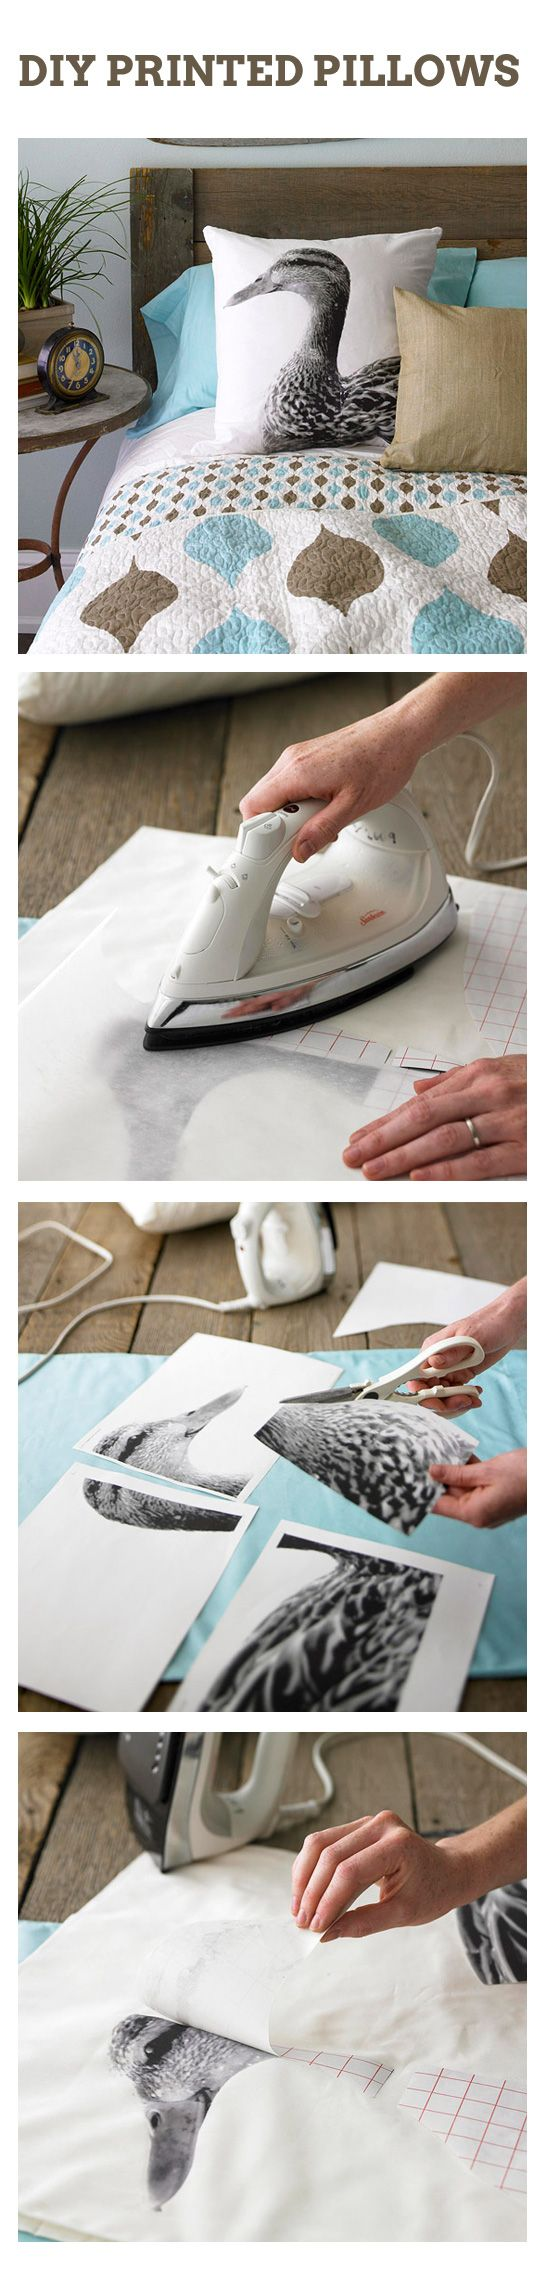 DIY printed pillows YOU SEE HOW THE TRANSFERS ARE MADE HERE? YOU CAN DO THE SAME…